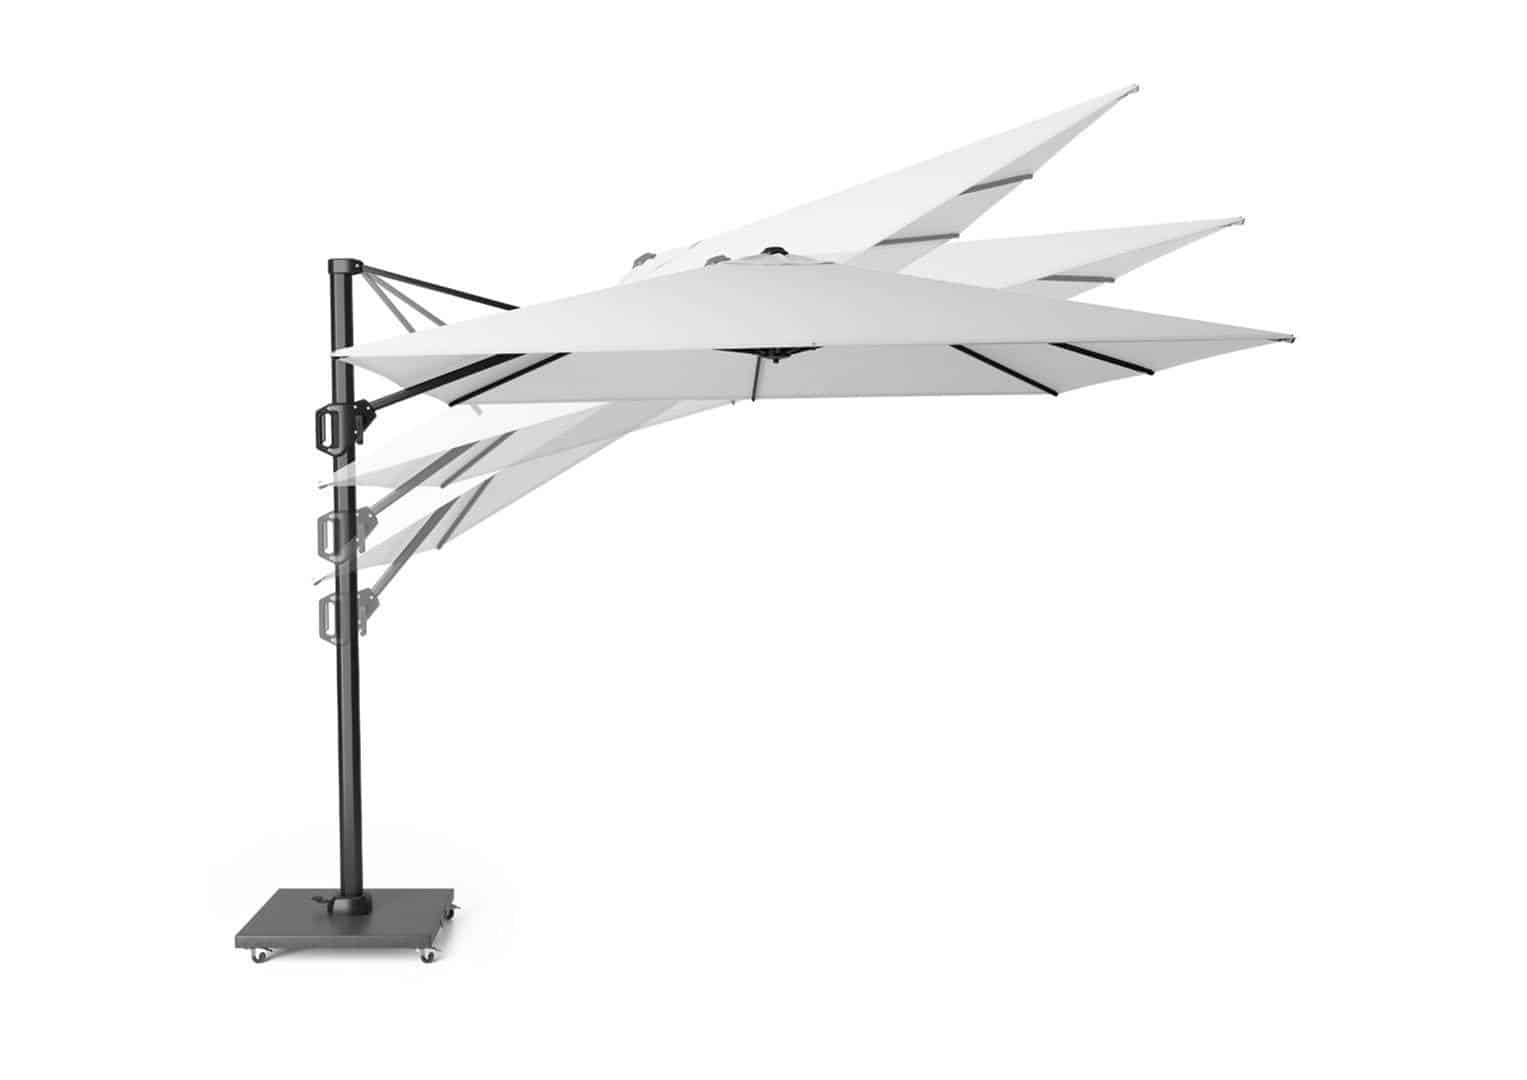 Parasol ogrodowy Challenger T1 3 m x 3 m white 257